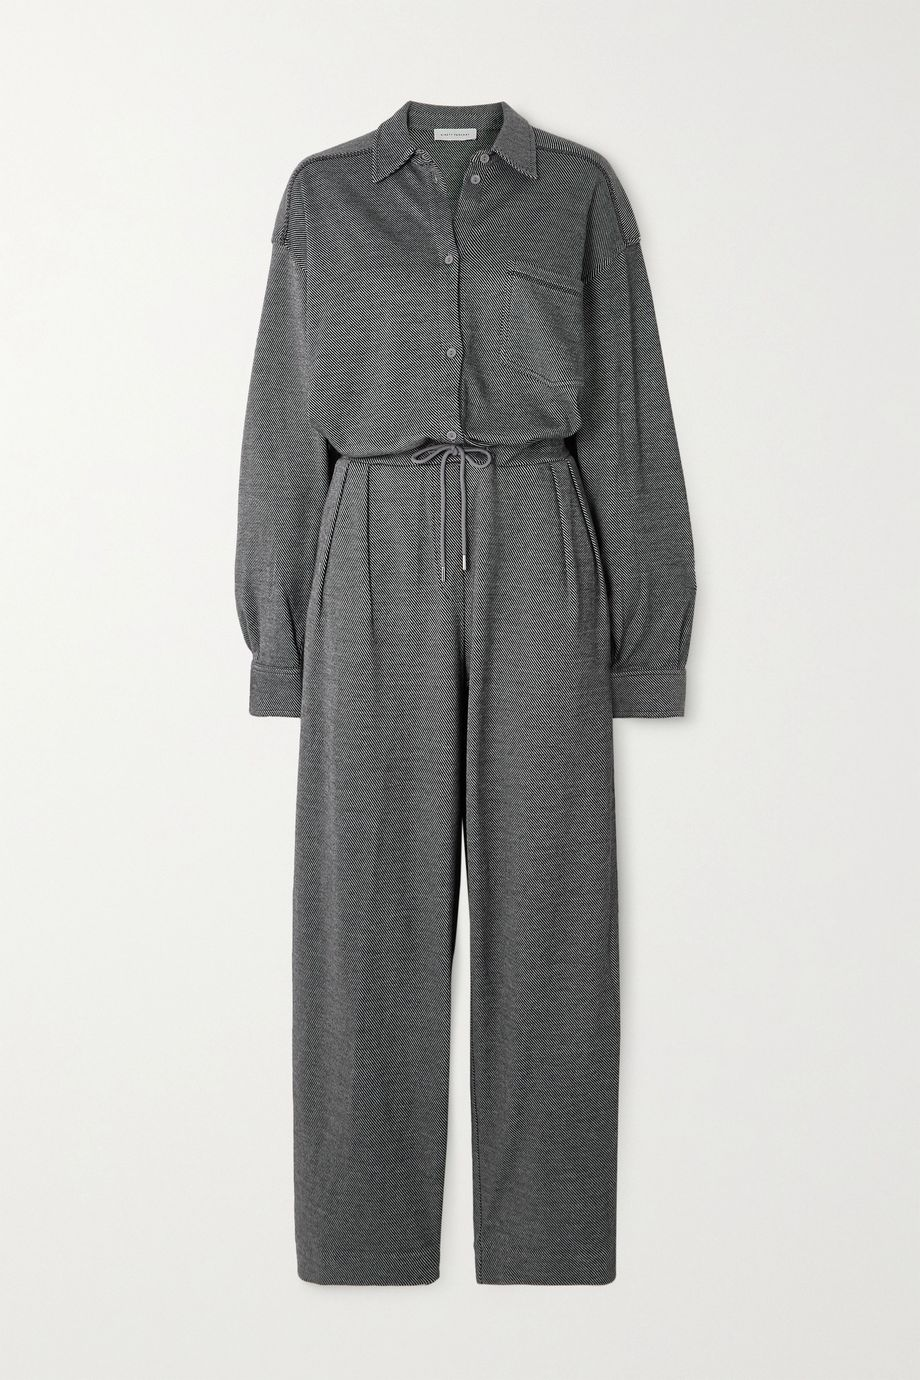 Ninety Percent + NET SUSTAIN striped organic cotton-blend jacquard jumpsuit